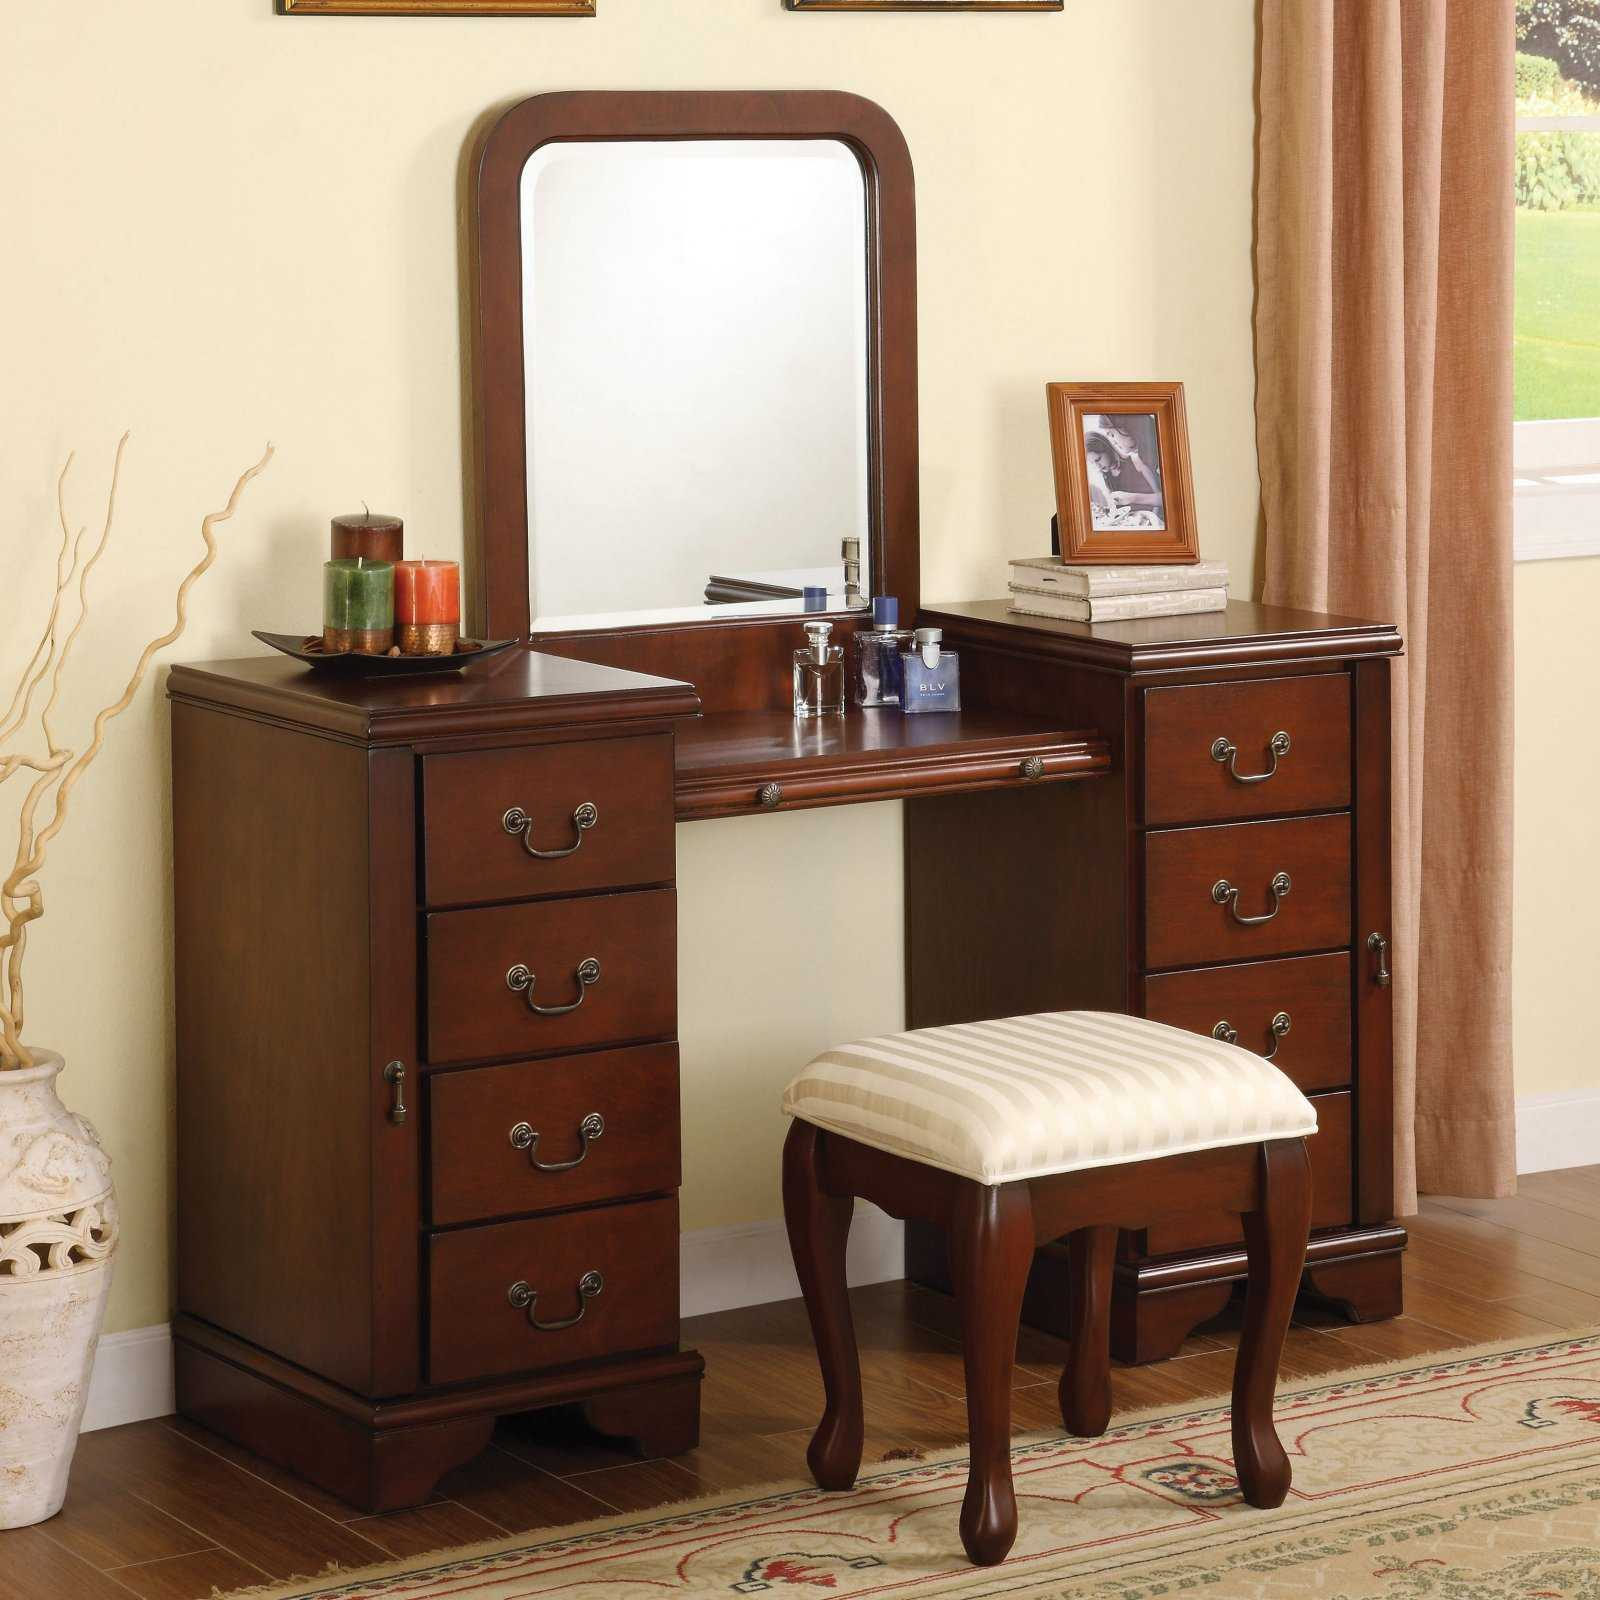 Picture of: Wood Bedroom Vanity with Drawers